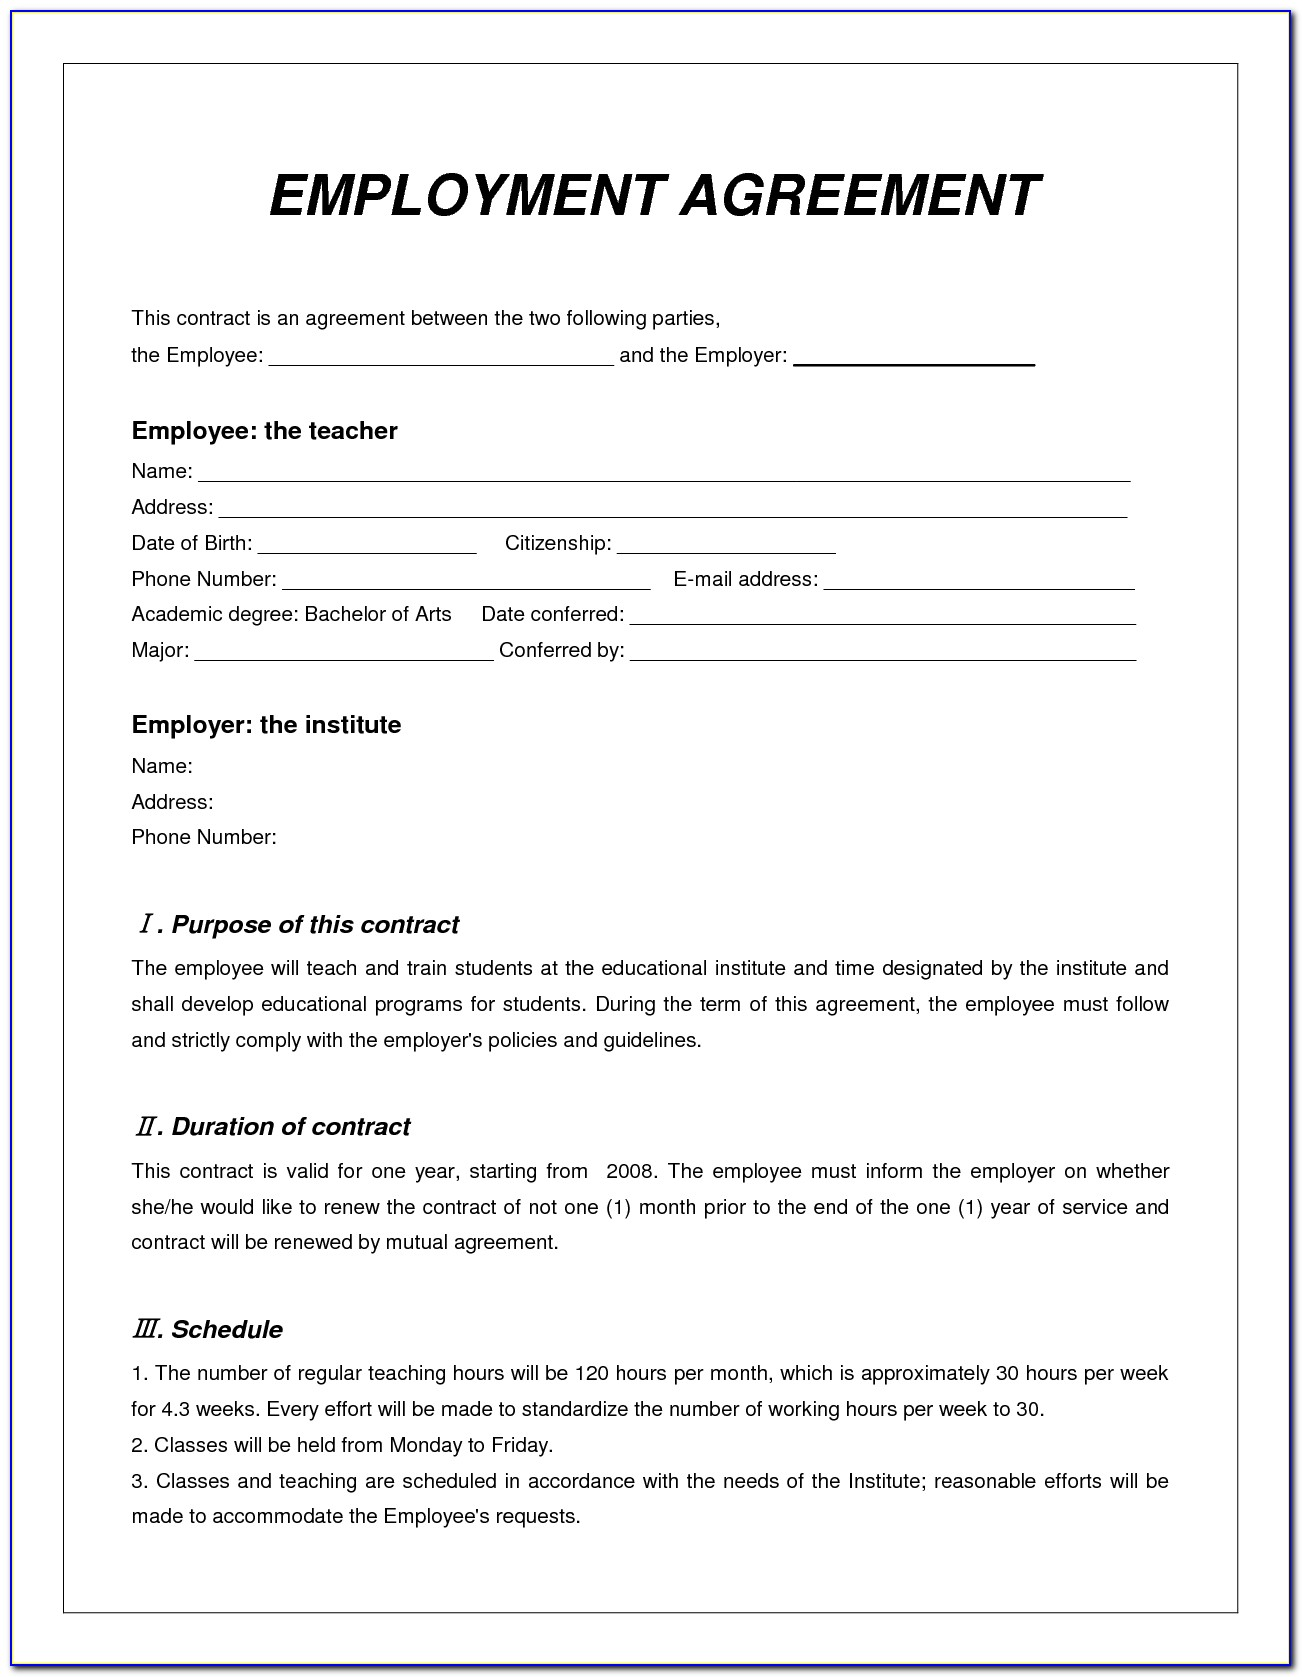 Contract Employment Agreement Template